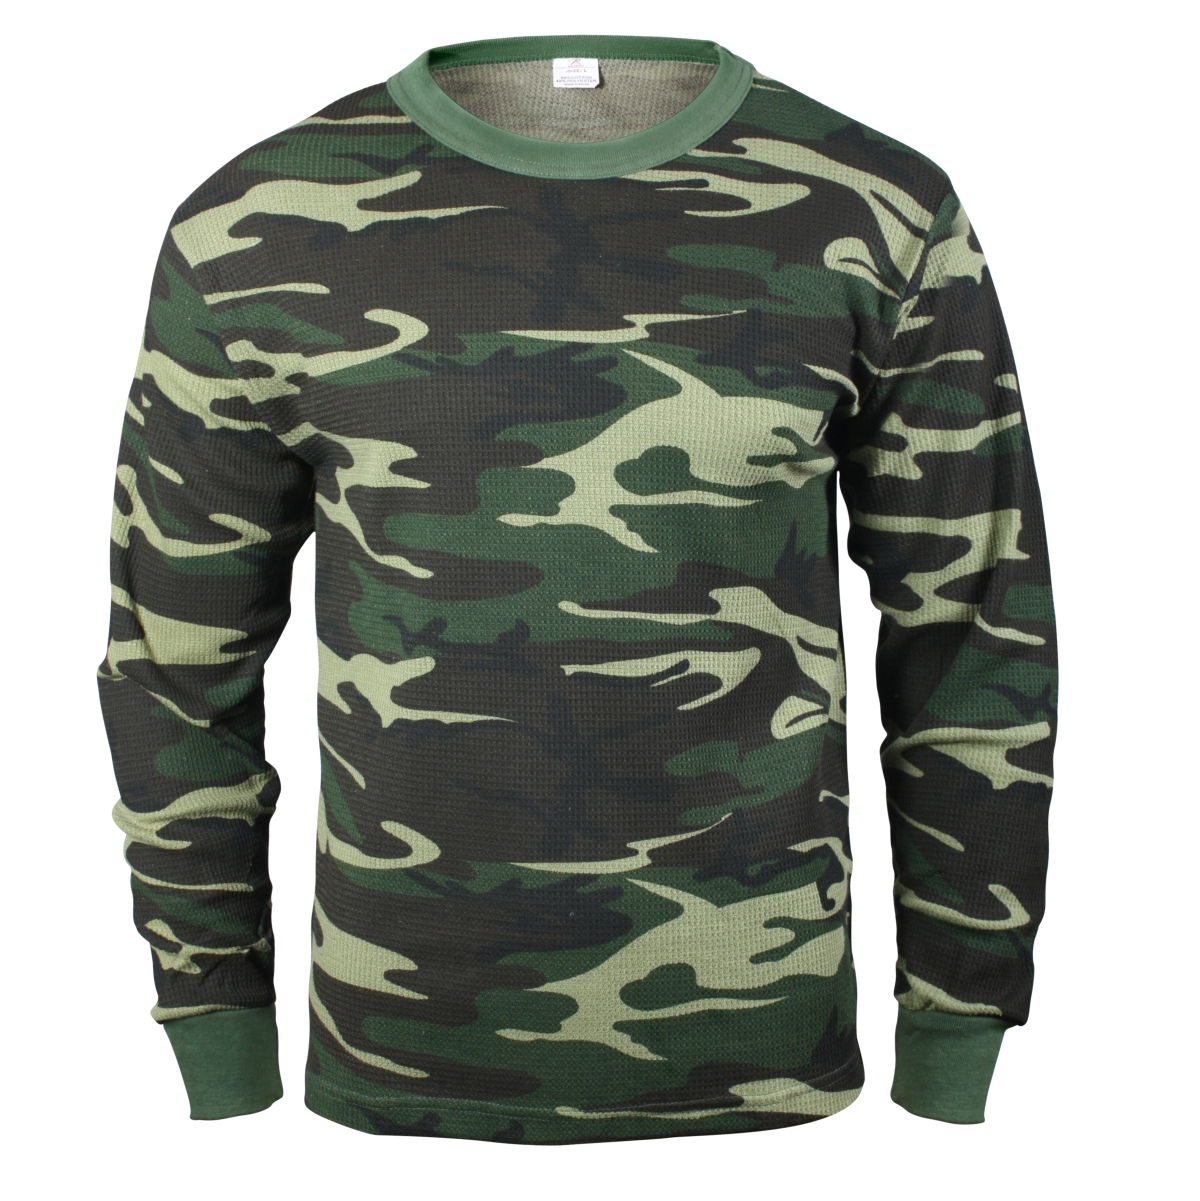 Woodland Camouflage Thermal Shirt, Long Underwear Top